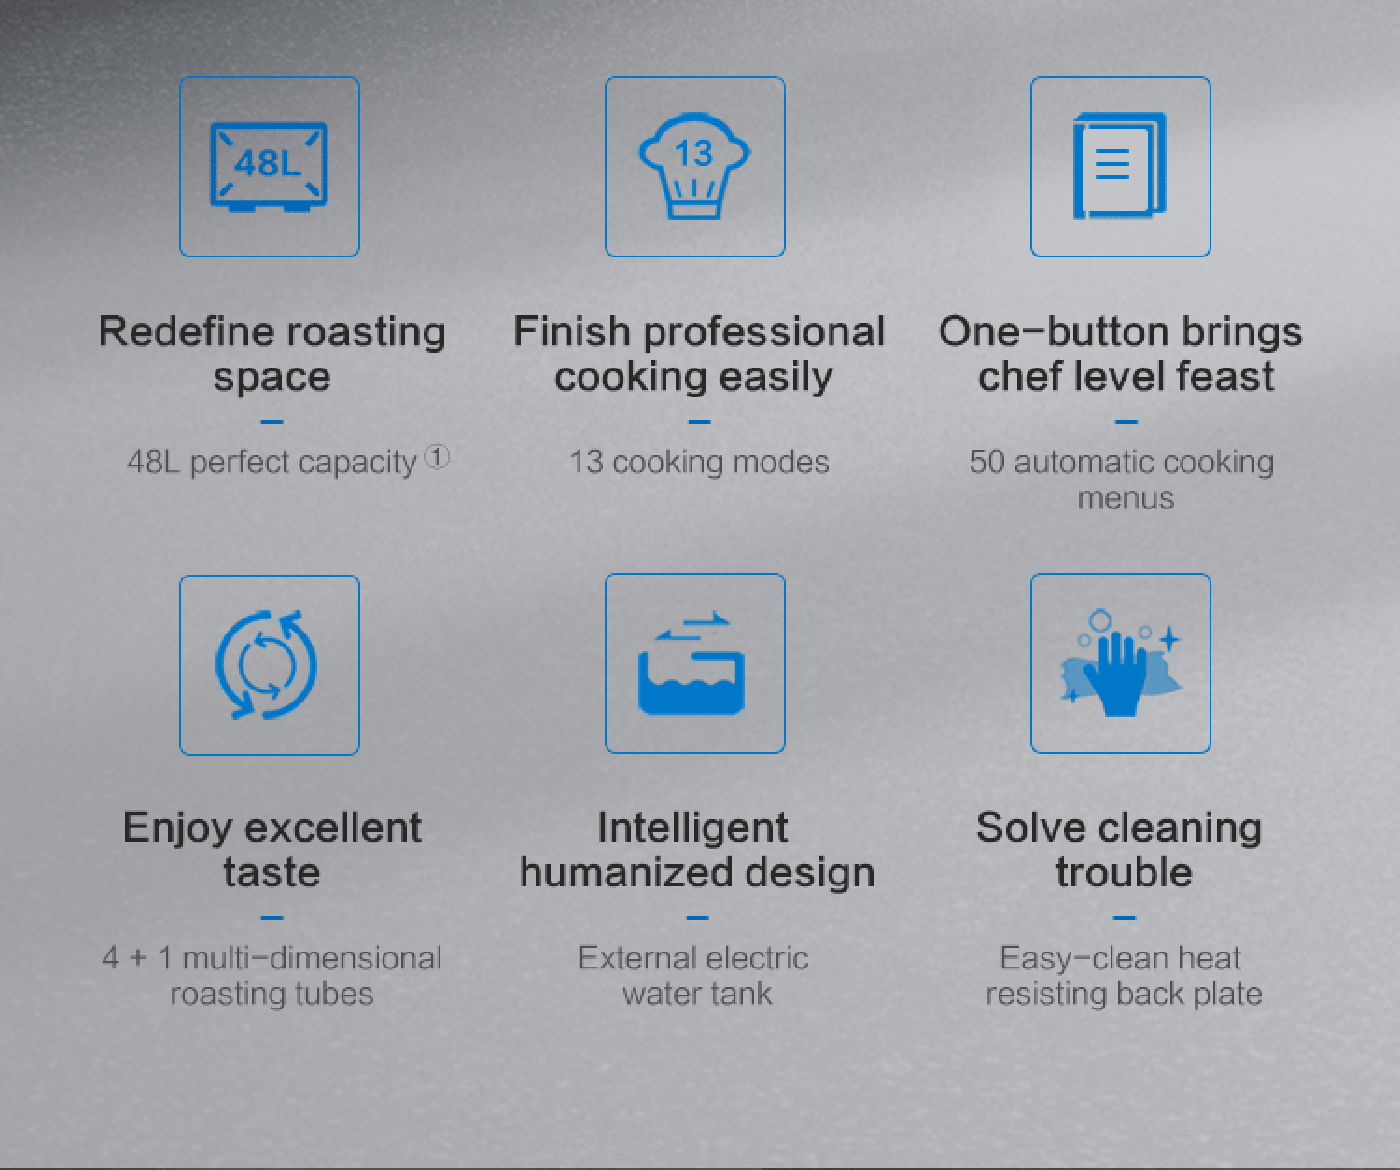 ①Redefine roasting space<br /> 48Lperfect capacity<br /> Meets all the cooking needs<br /> ②Easily finish professional cooking<br /> 13 cooking modes